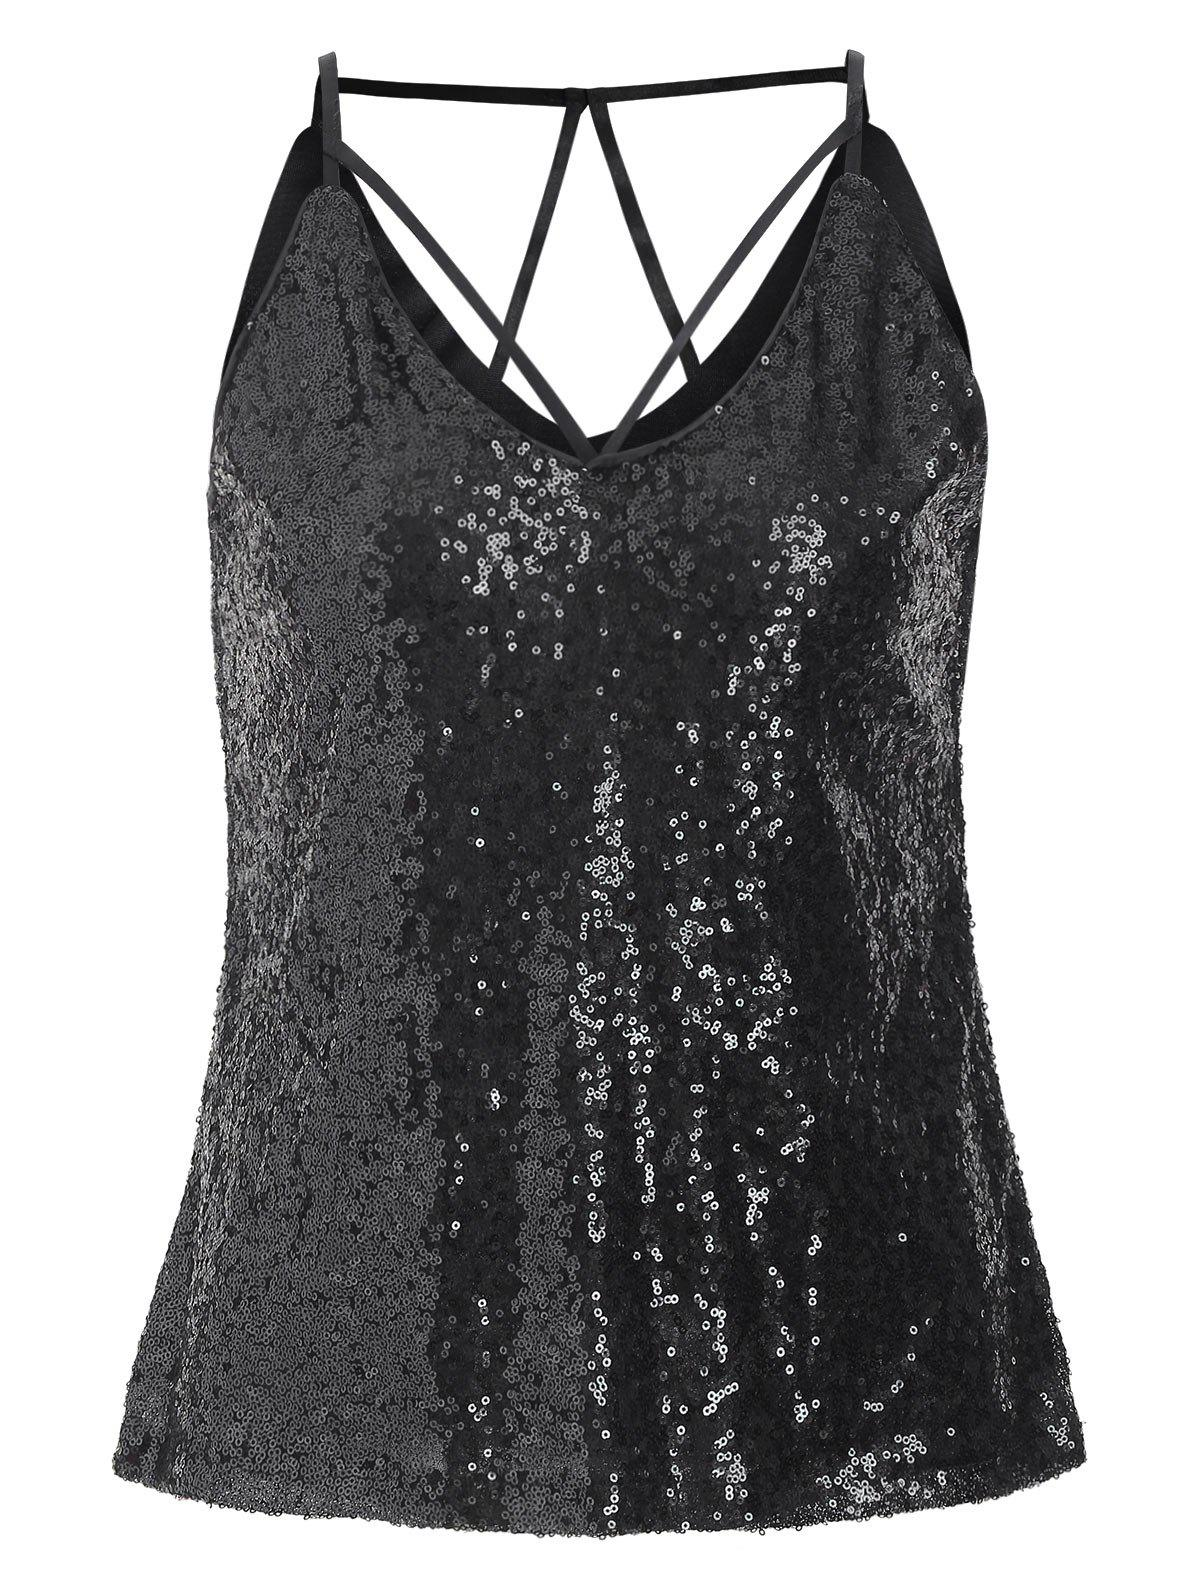 Store Party Strappy Sequins Cami Top